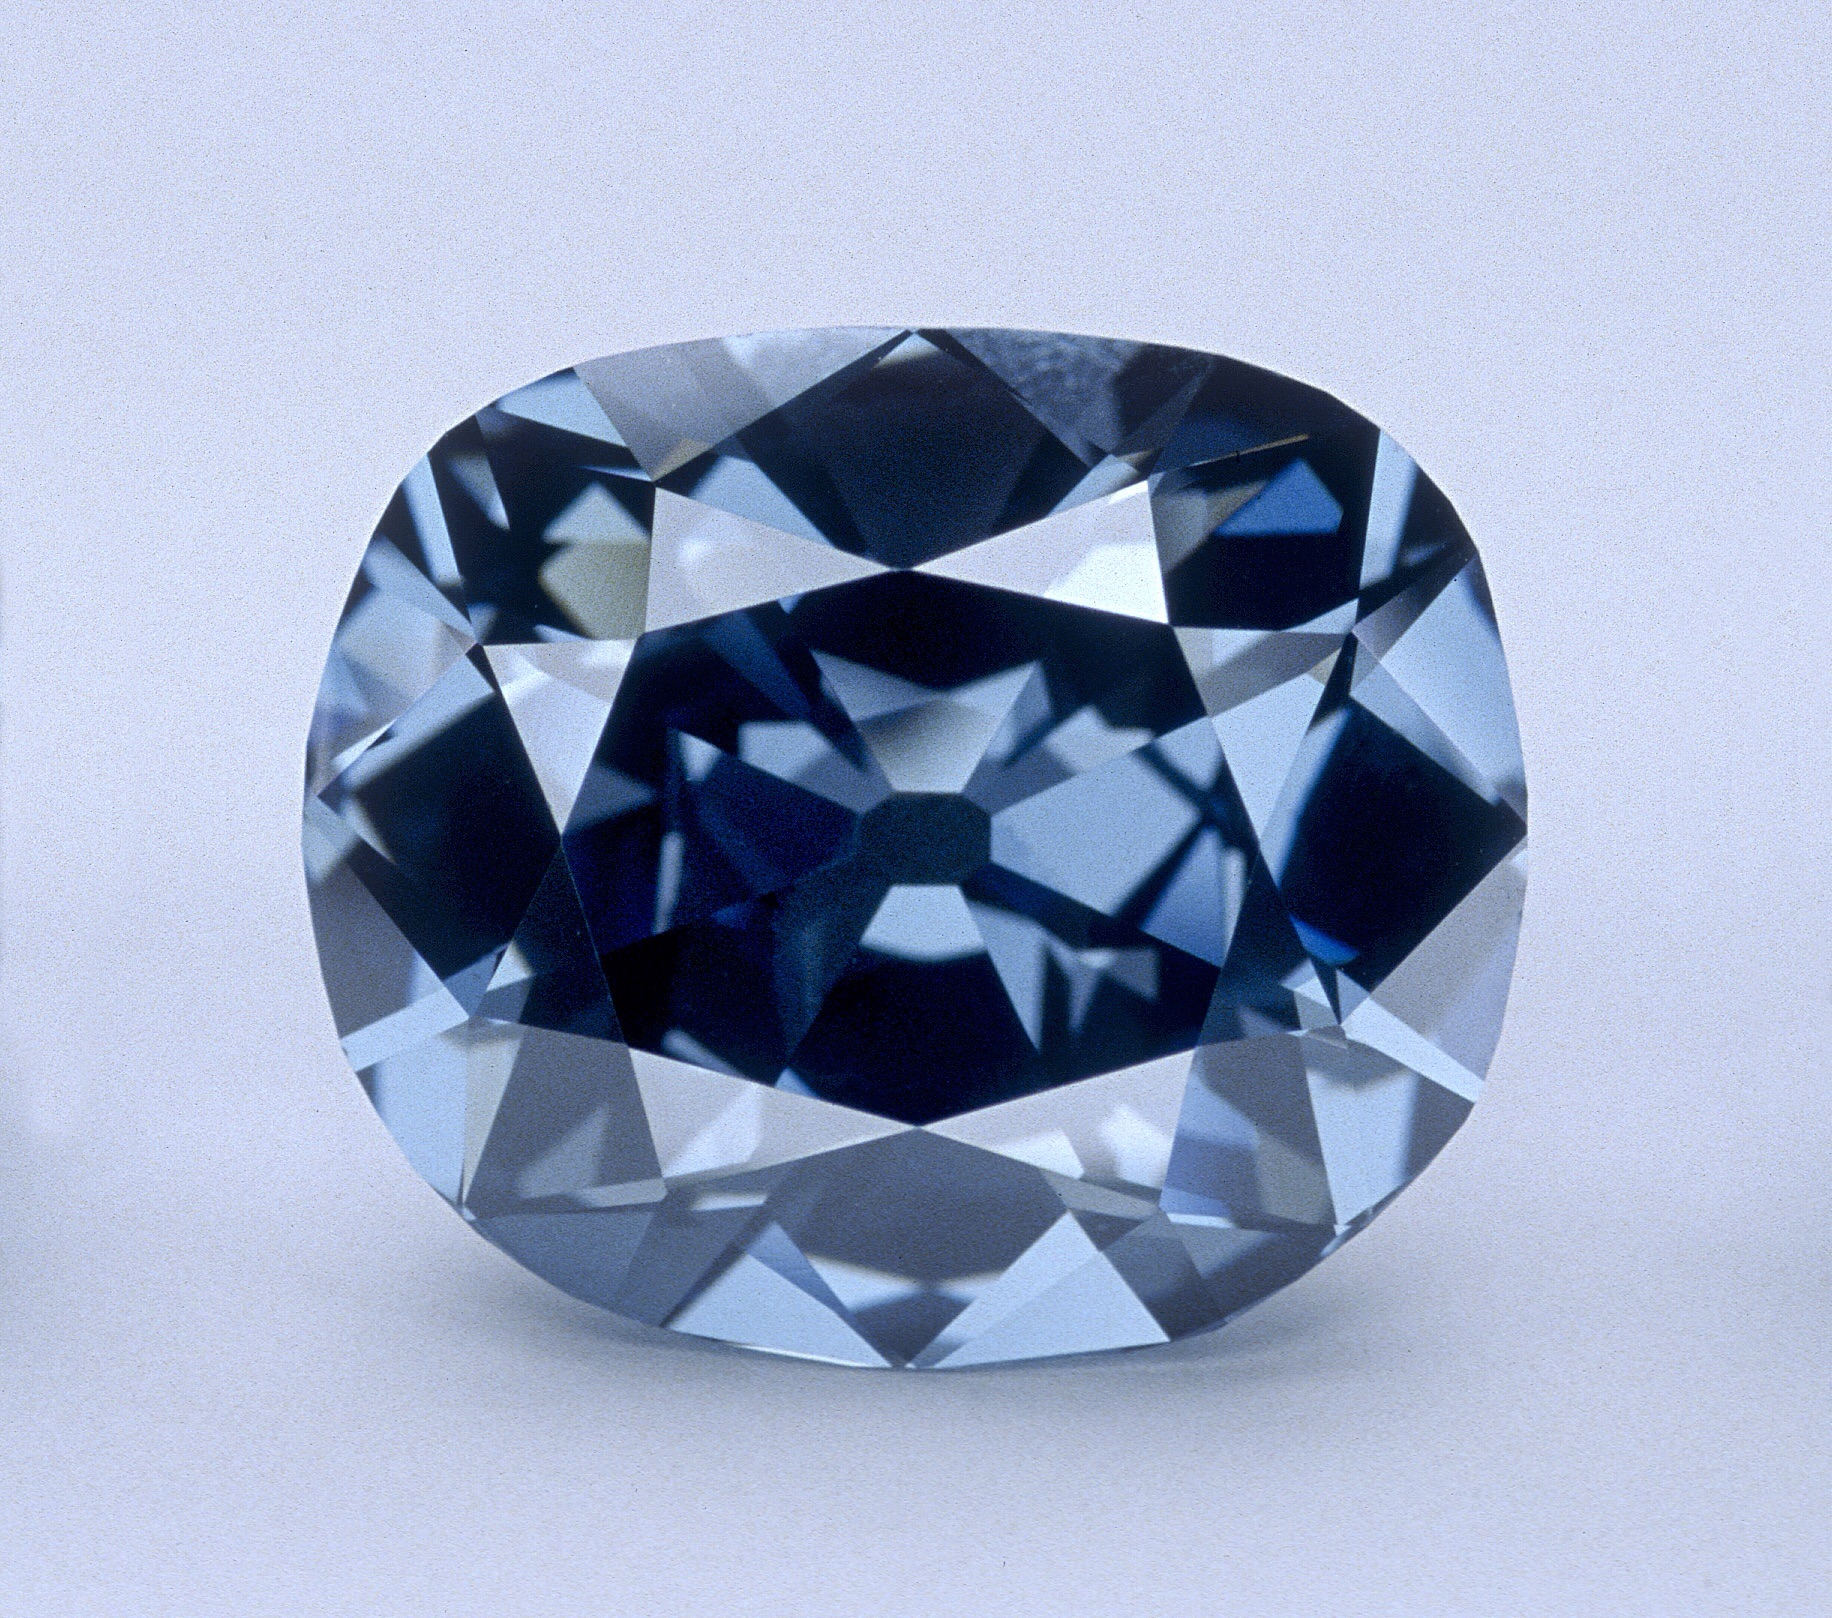 Billedresultat for bleu de france diamant